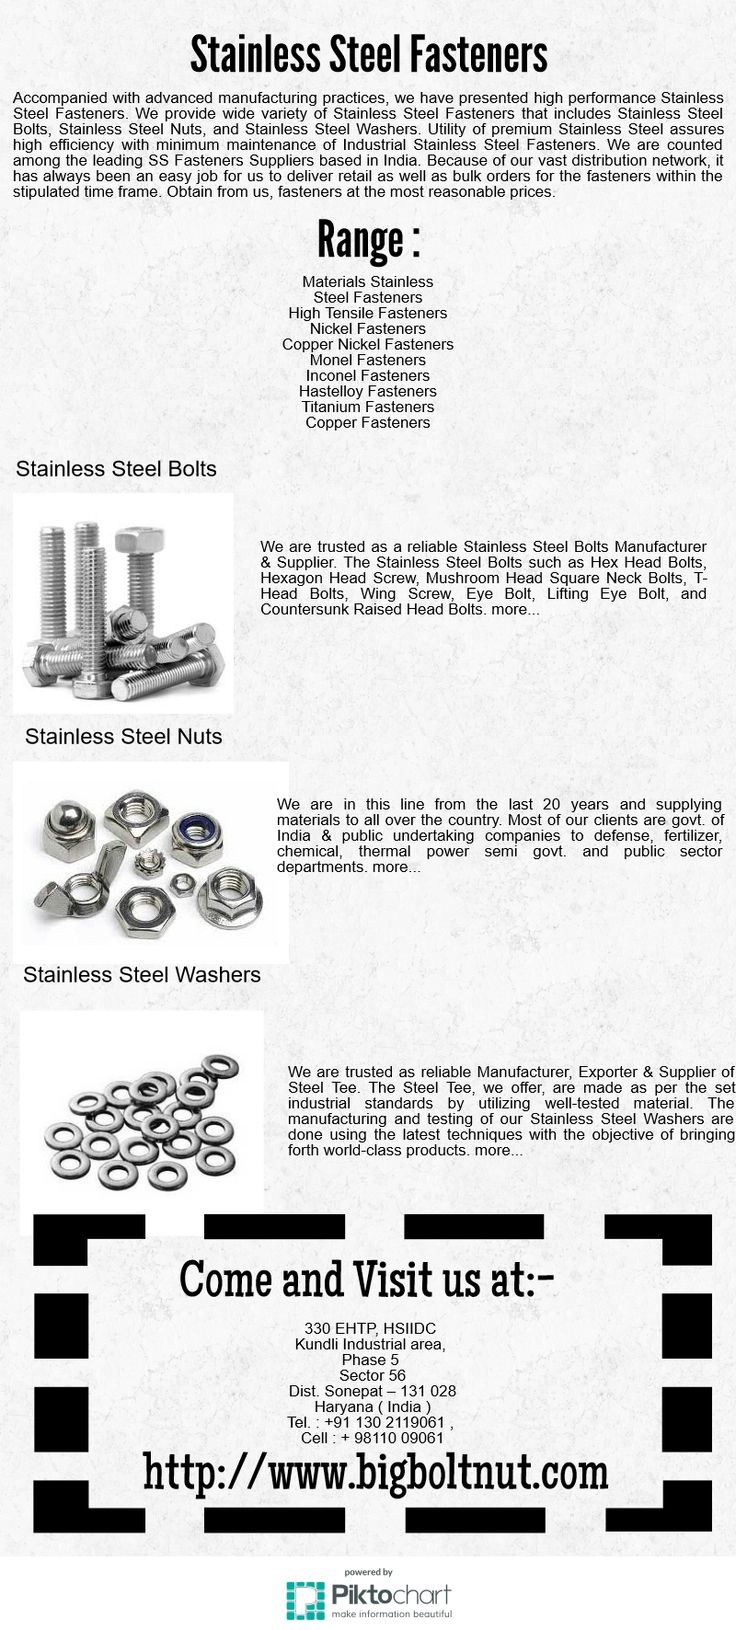 Accompanied with advanced manufacturing practices, we have presented high performance Stainless Steel Fasteners. We provide wide variety of Stainless Steel Fasteners that includes Stainless Steel Bolts, Stainless Steel Nuts, and Stainless Steel Washers.